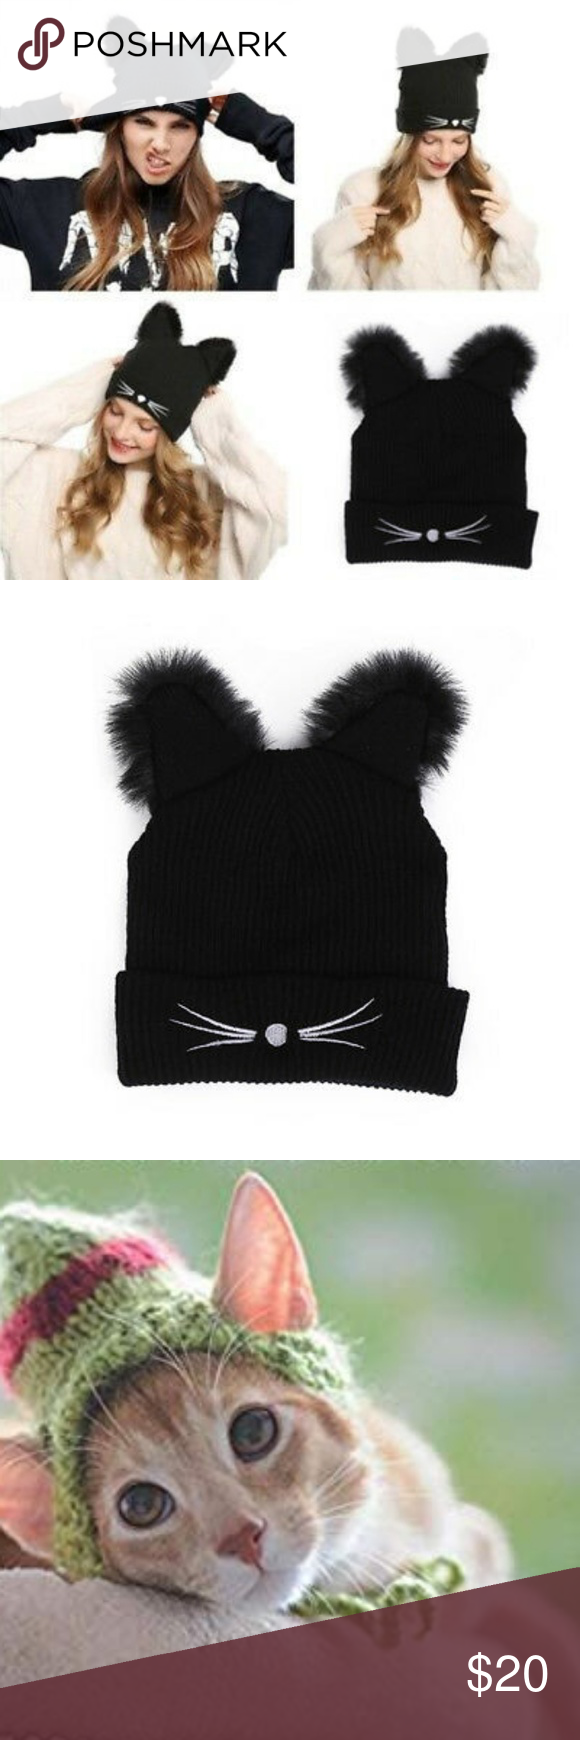 Cat Ears Hat Embroidered Warm Knit Skull Cap NWT Cat